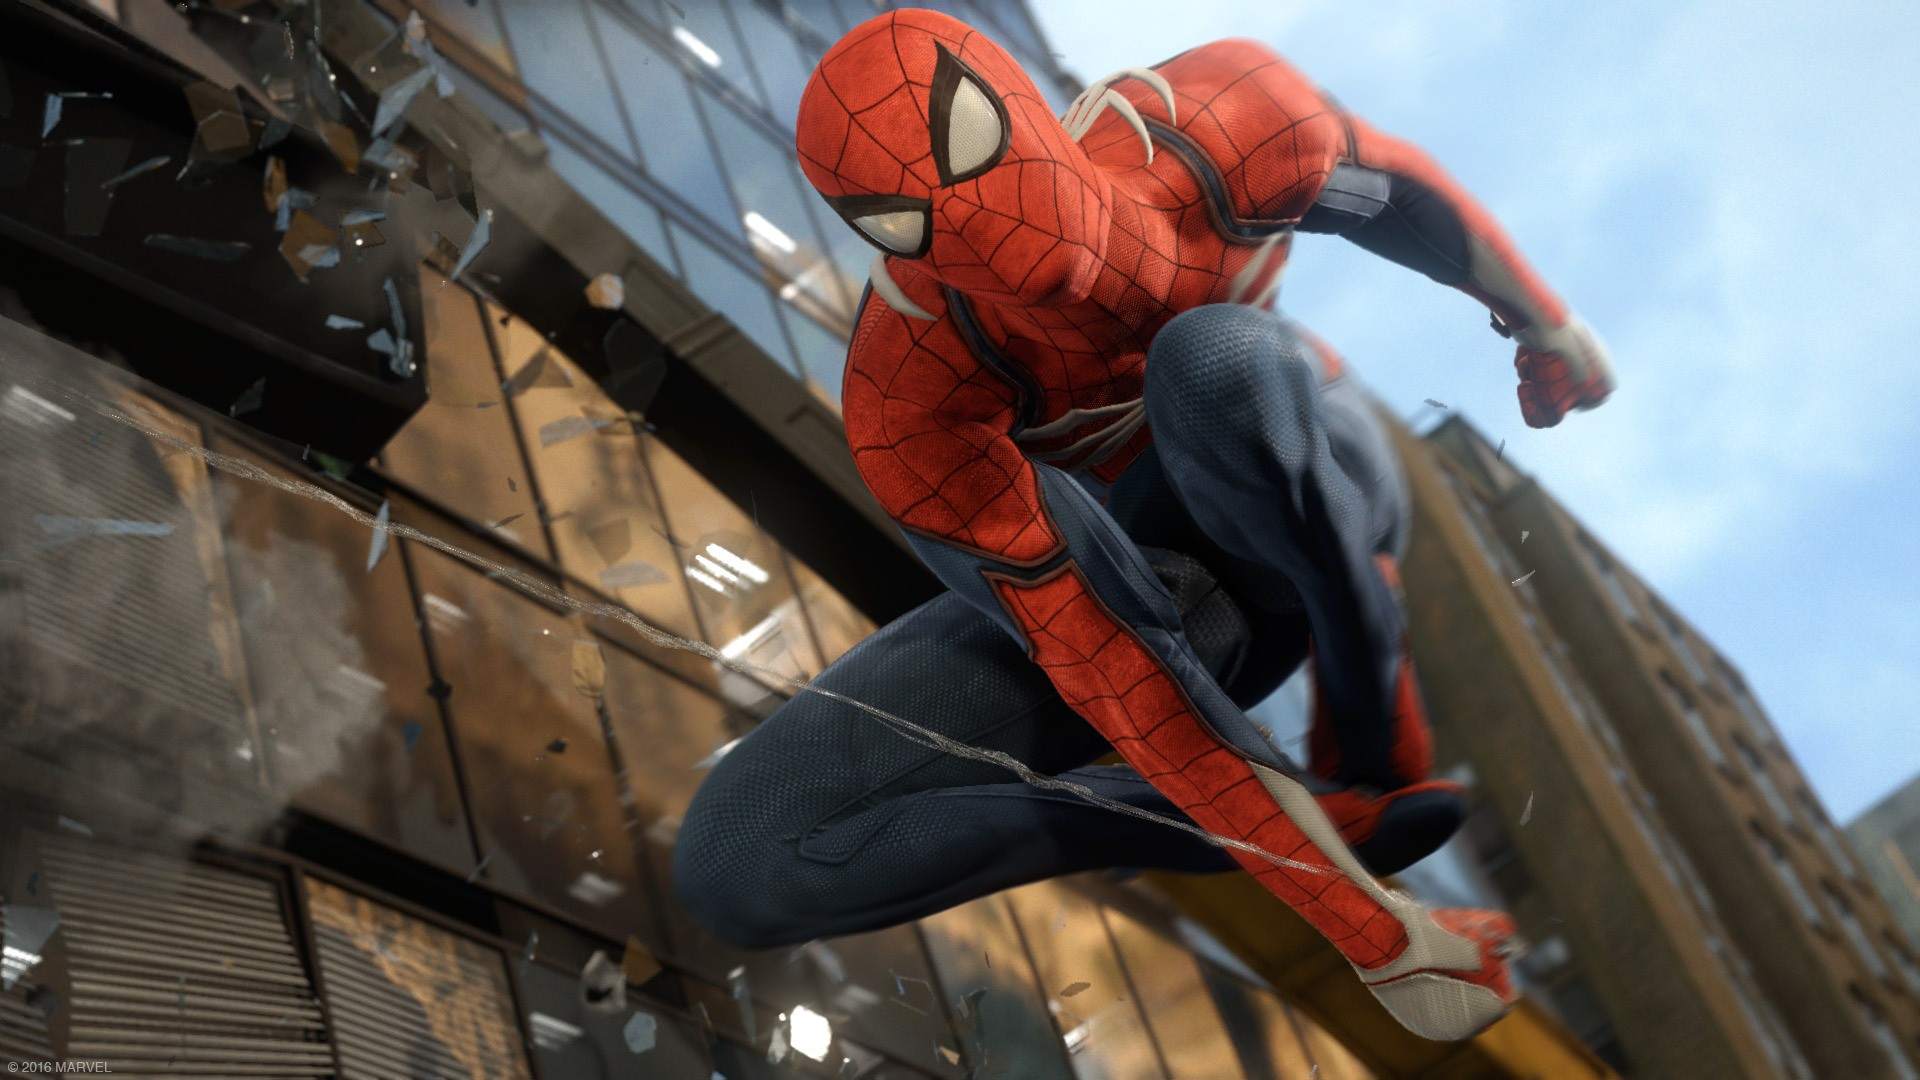 That Spider Man E3 trailer was running in game on a current PS4 1920x1080